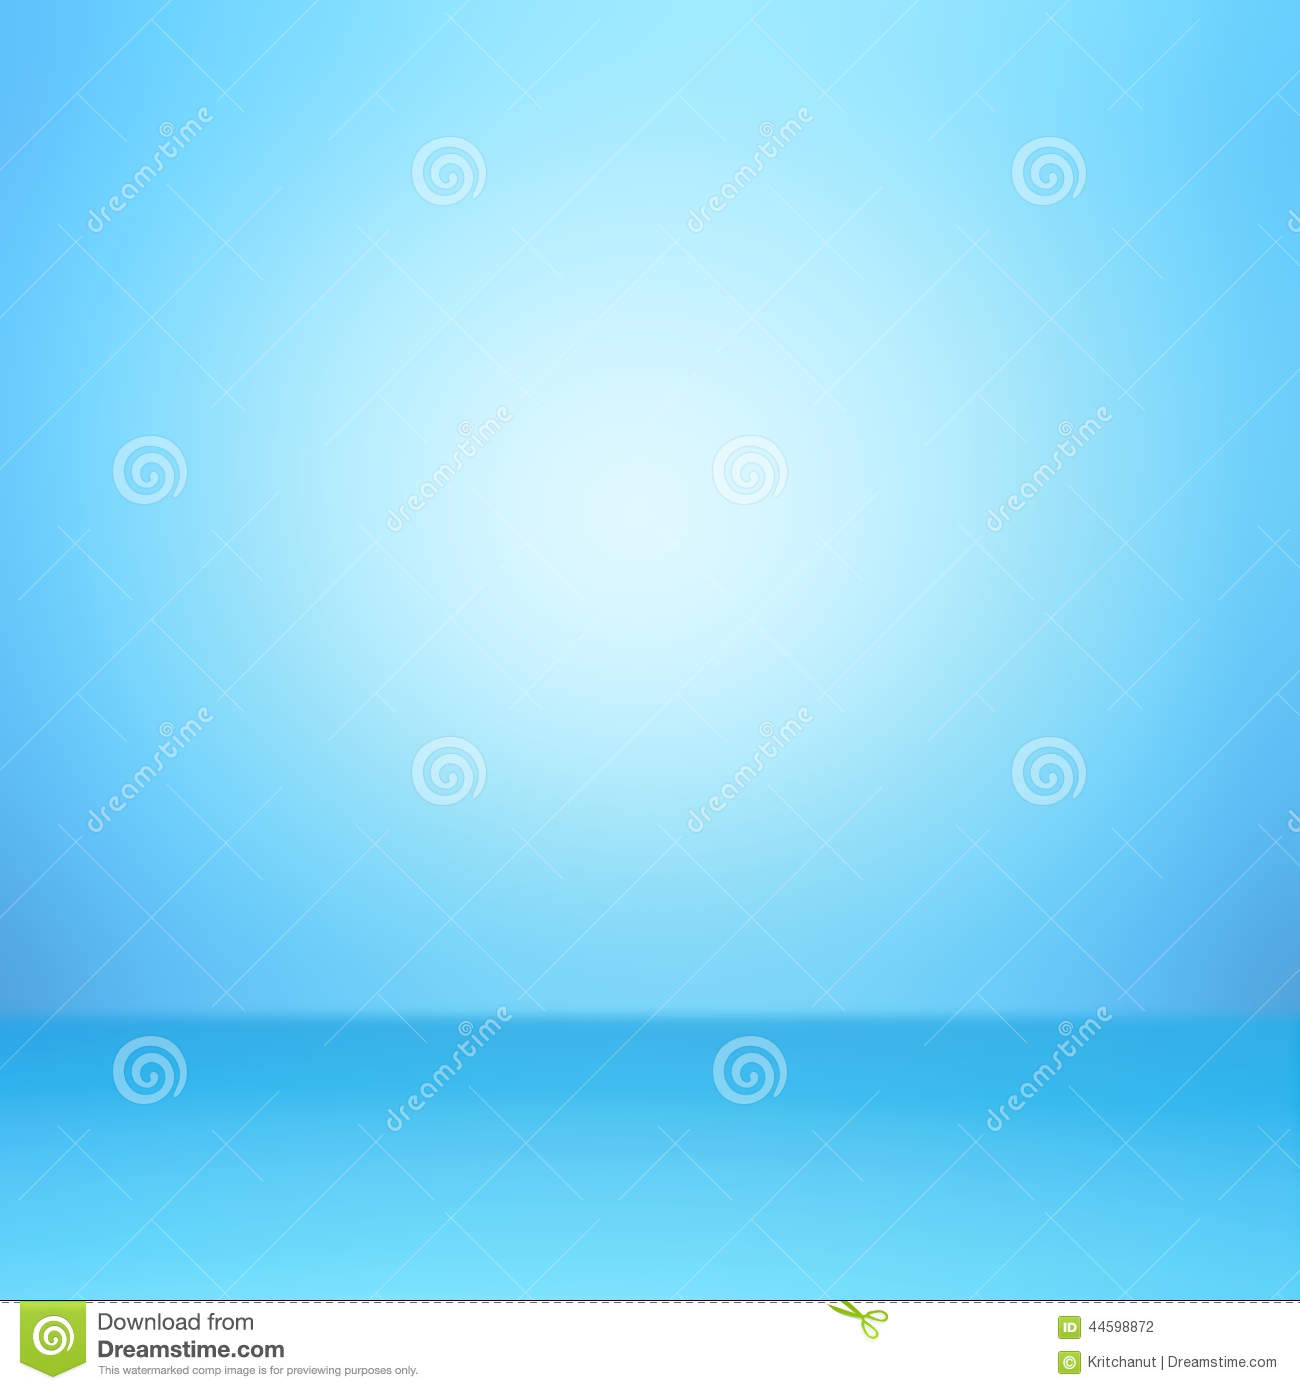 light blue abstract room background stock illustration image